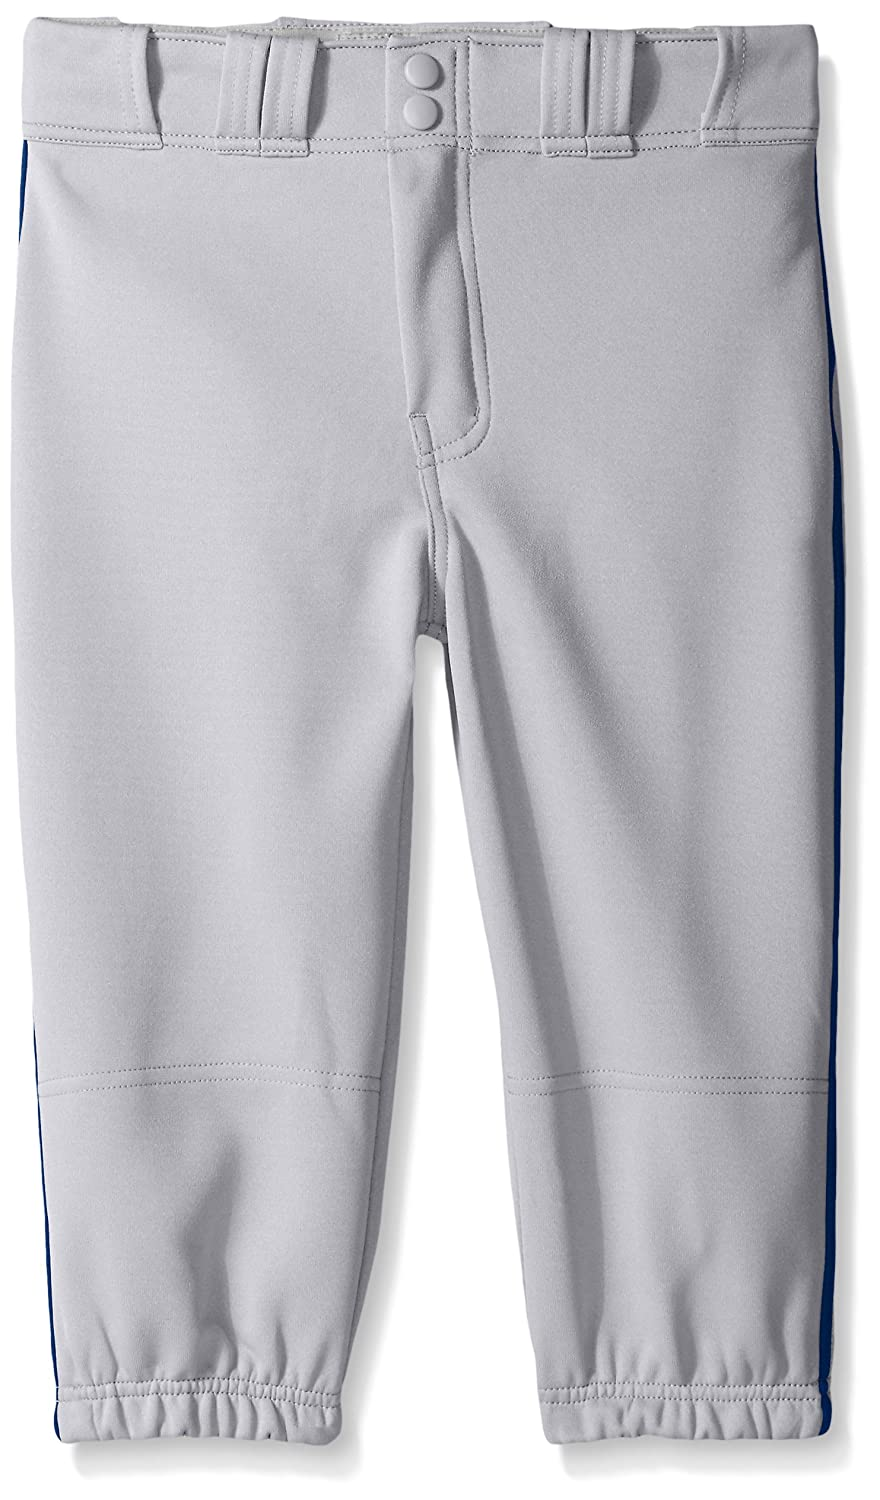 Easton Boys PRO Plus Piped Knicker EABT9